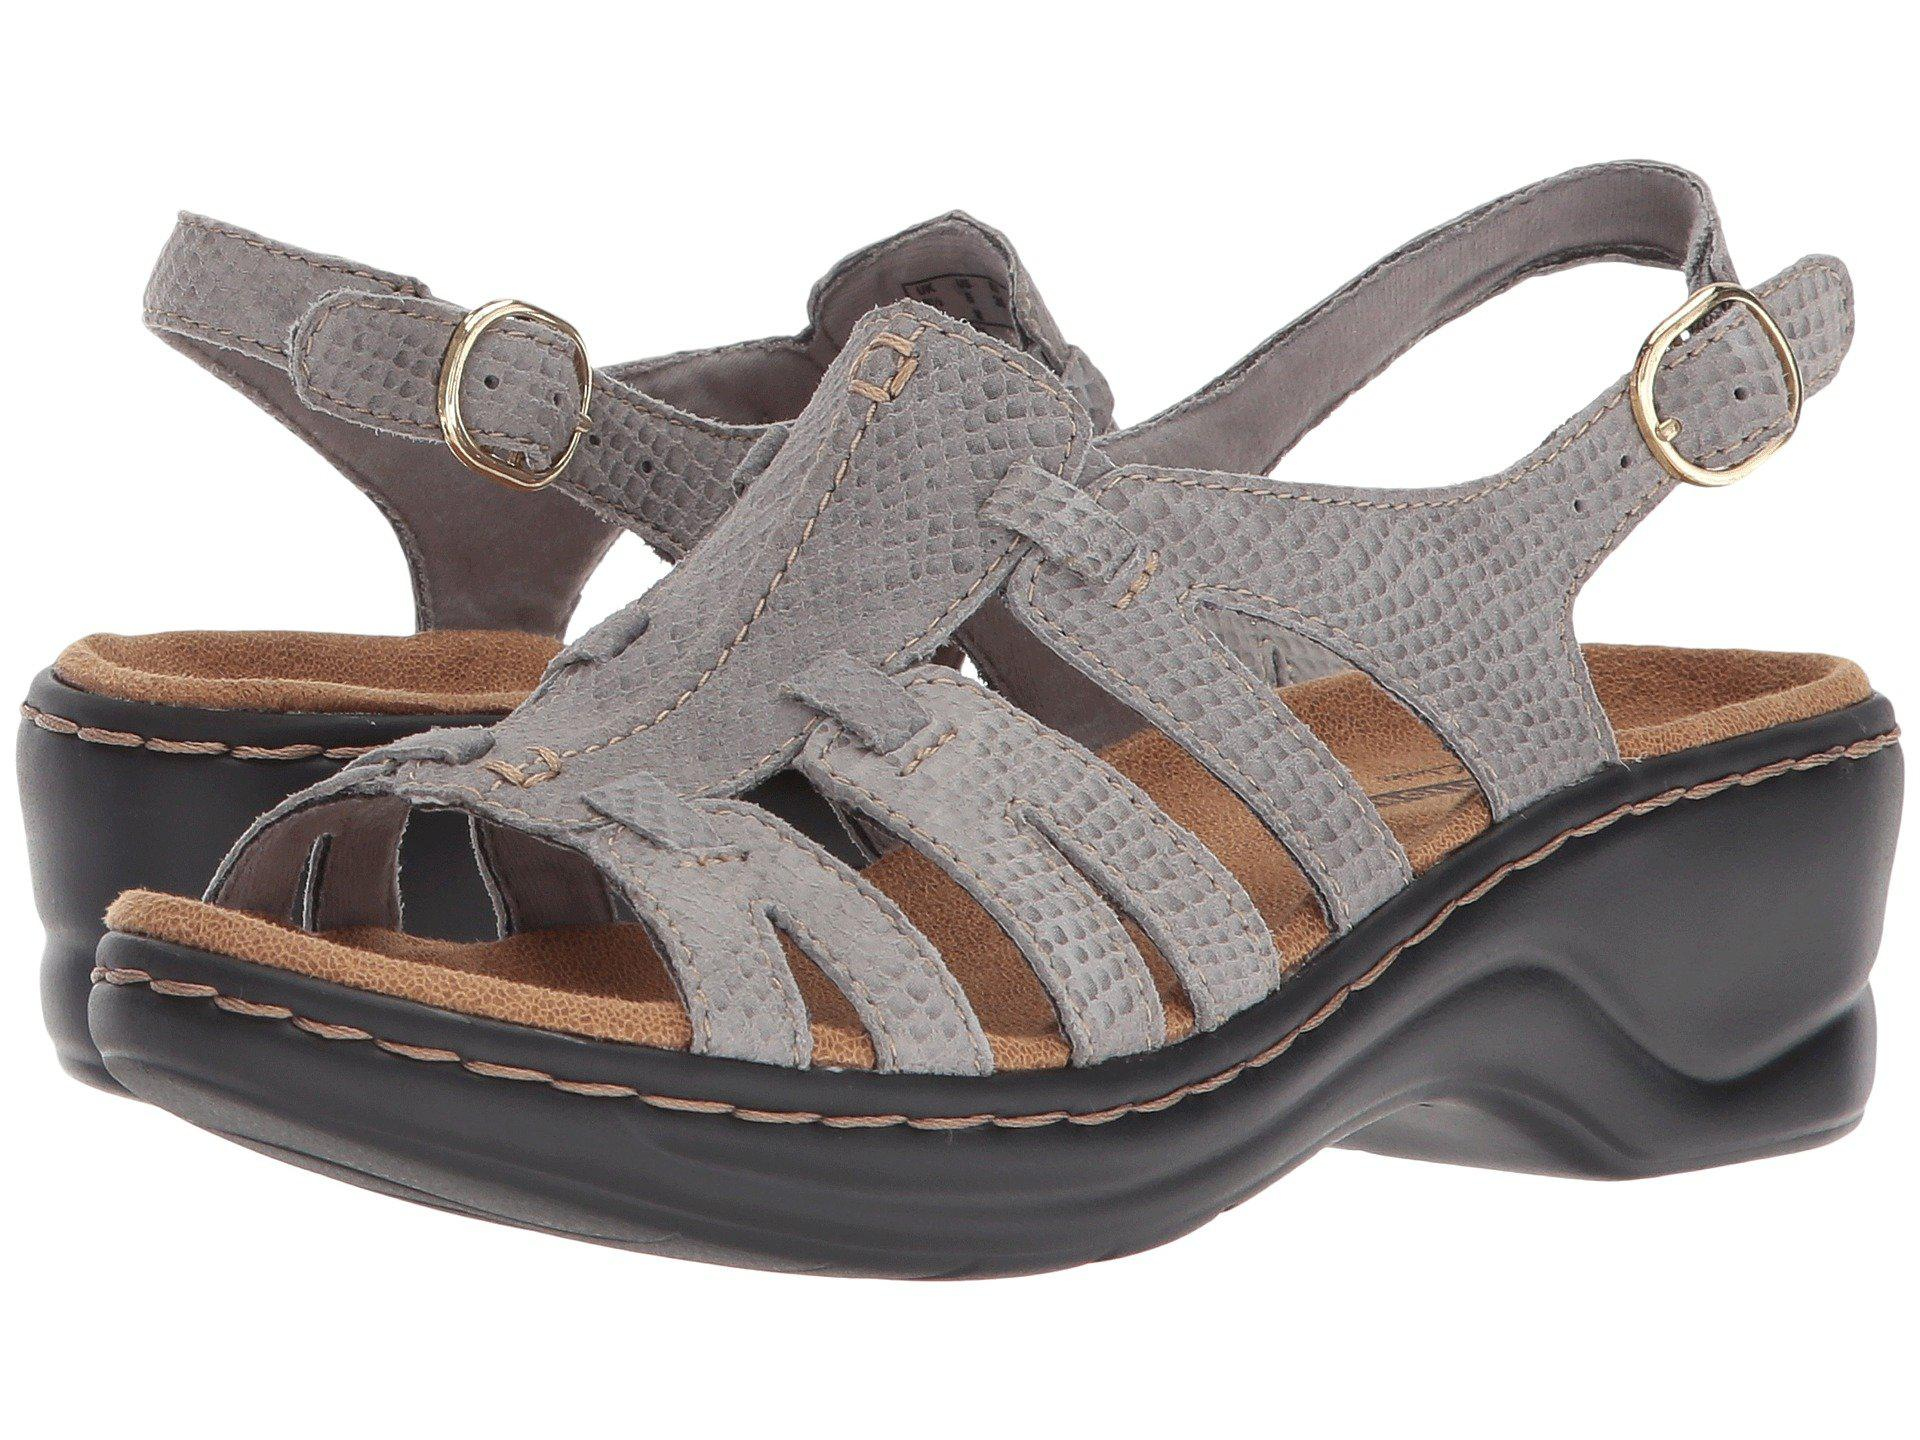 3a883810dfc Lyst - Clarks Lexi Marigold Q (pewter Leather) Women s Sandals in Gray